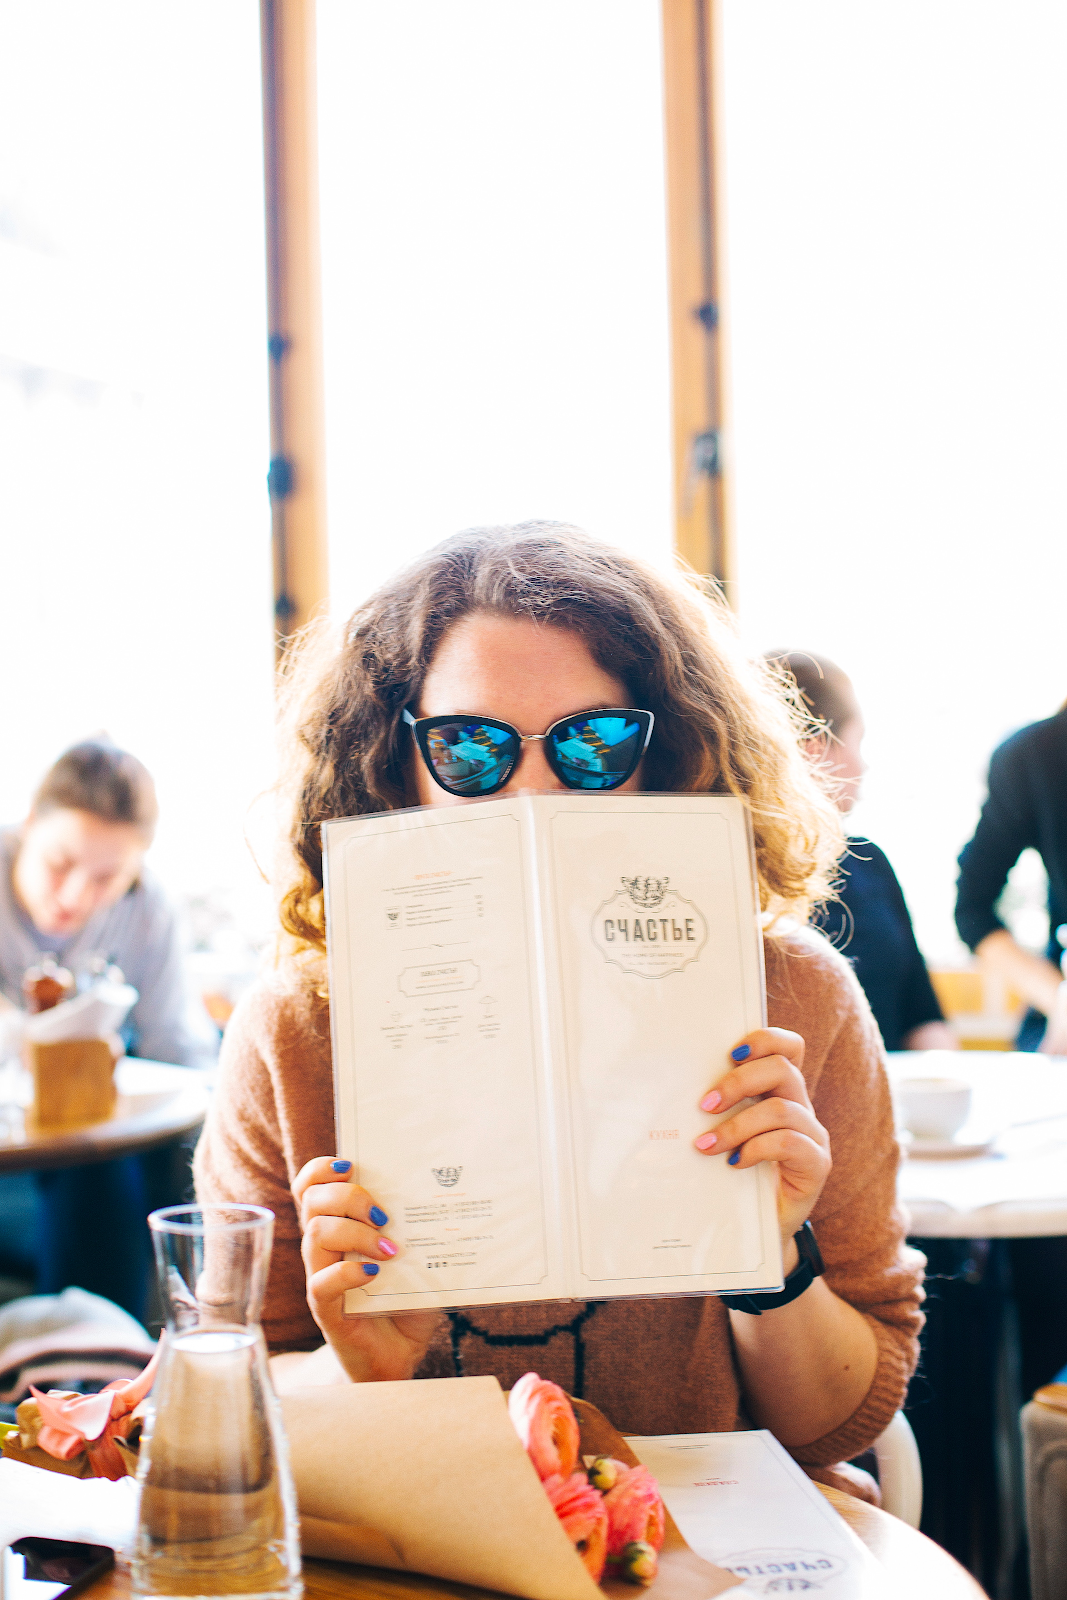 Woman reading a menu at a restaurant.  Selecting food for a healthy living lifestyle.